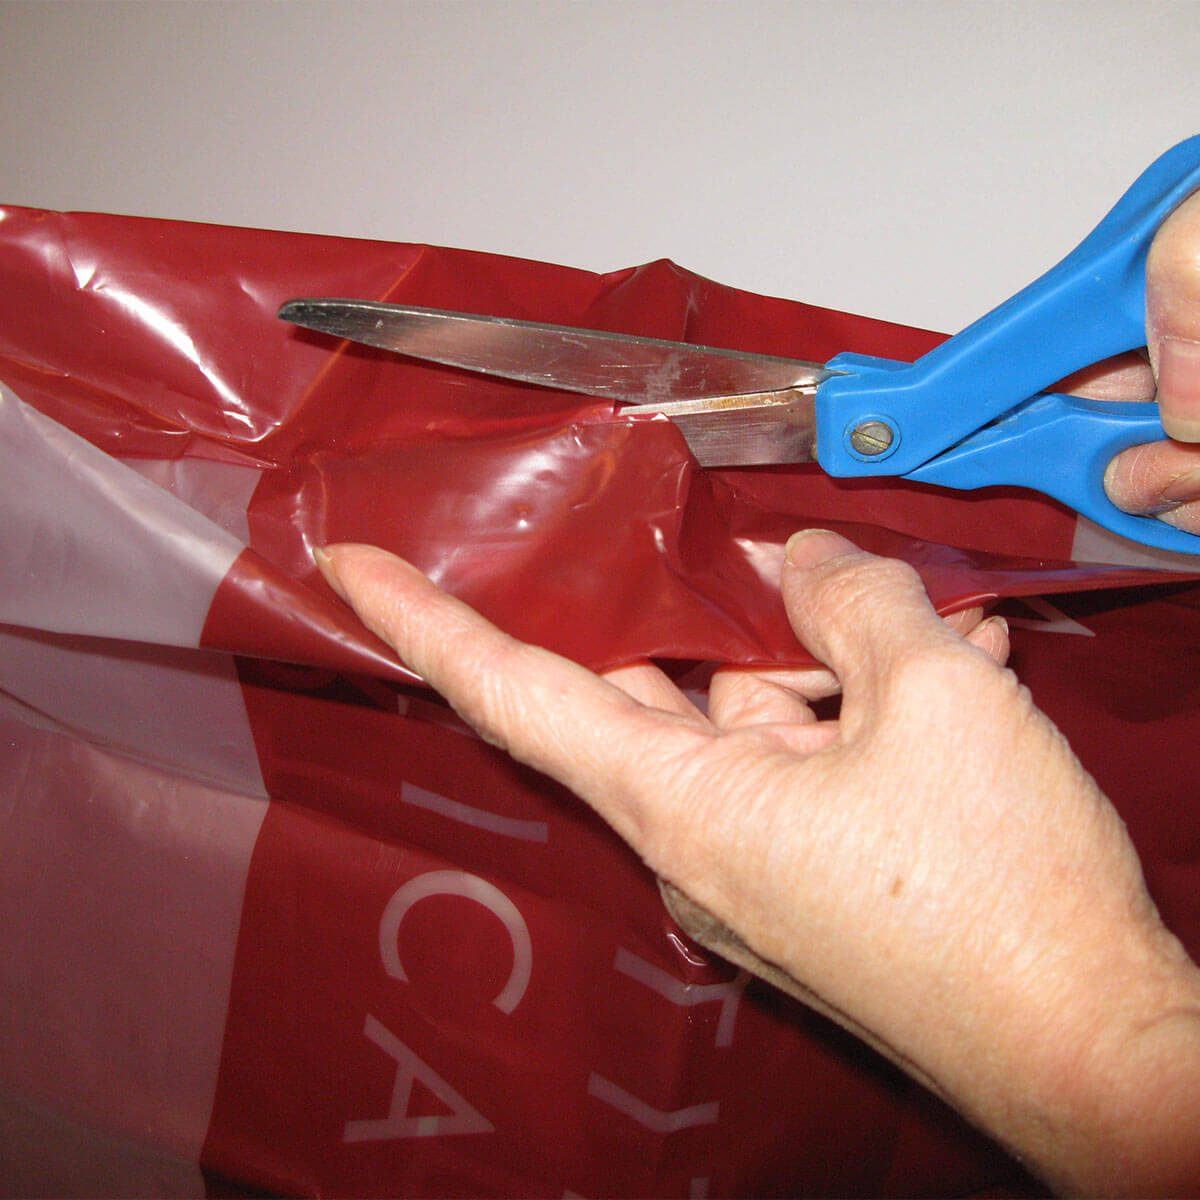 cutting plastic bag